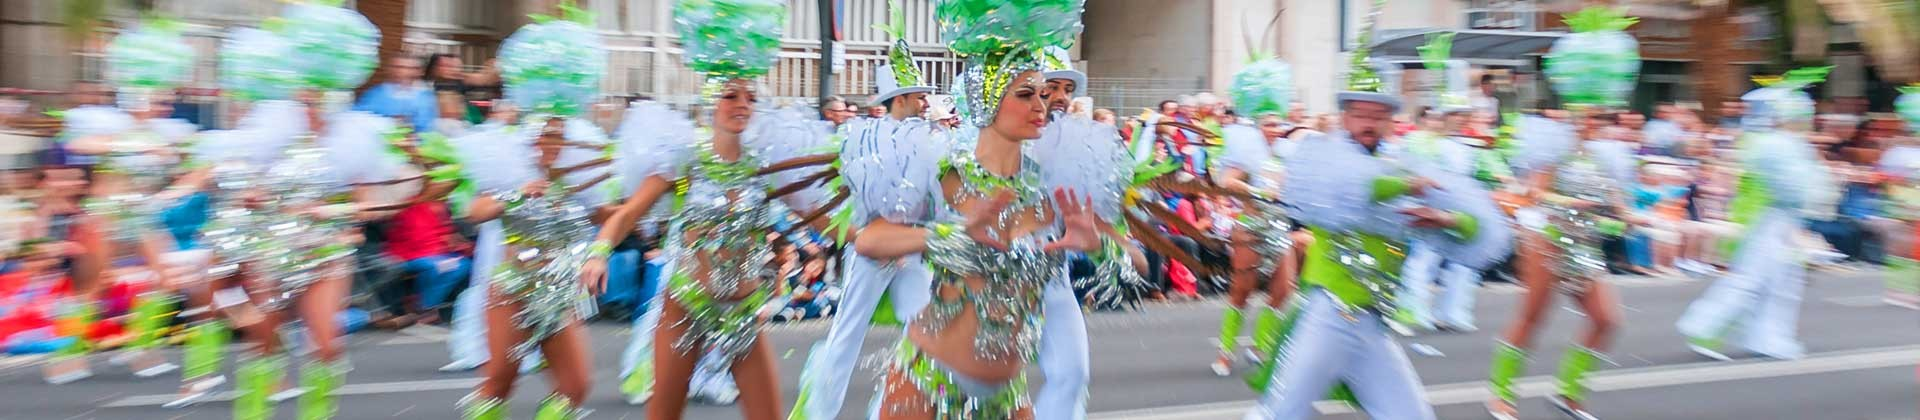 https://www.goodmorningtenerife.com/wp-content/uploads/2014/08/01_slide_carnival_GM_Tenerife-1920x420.jpg